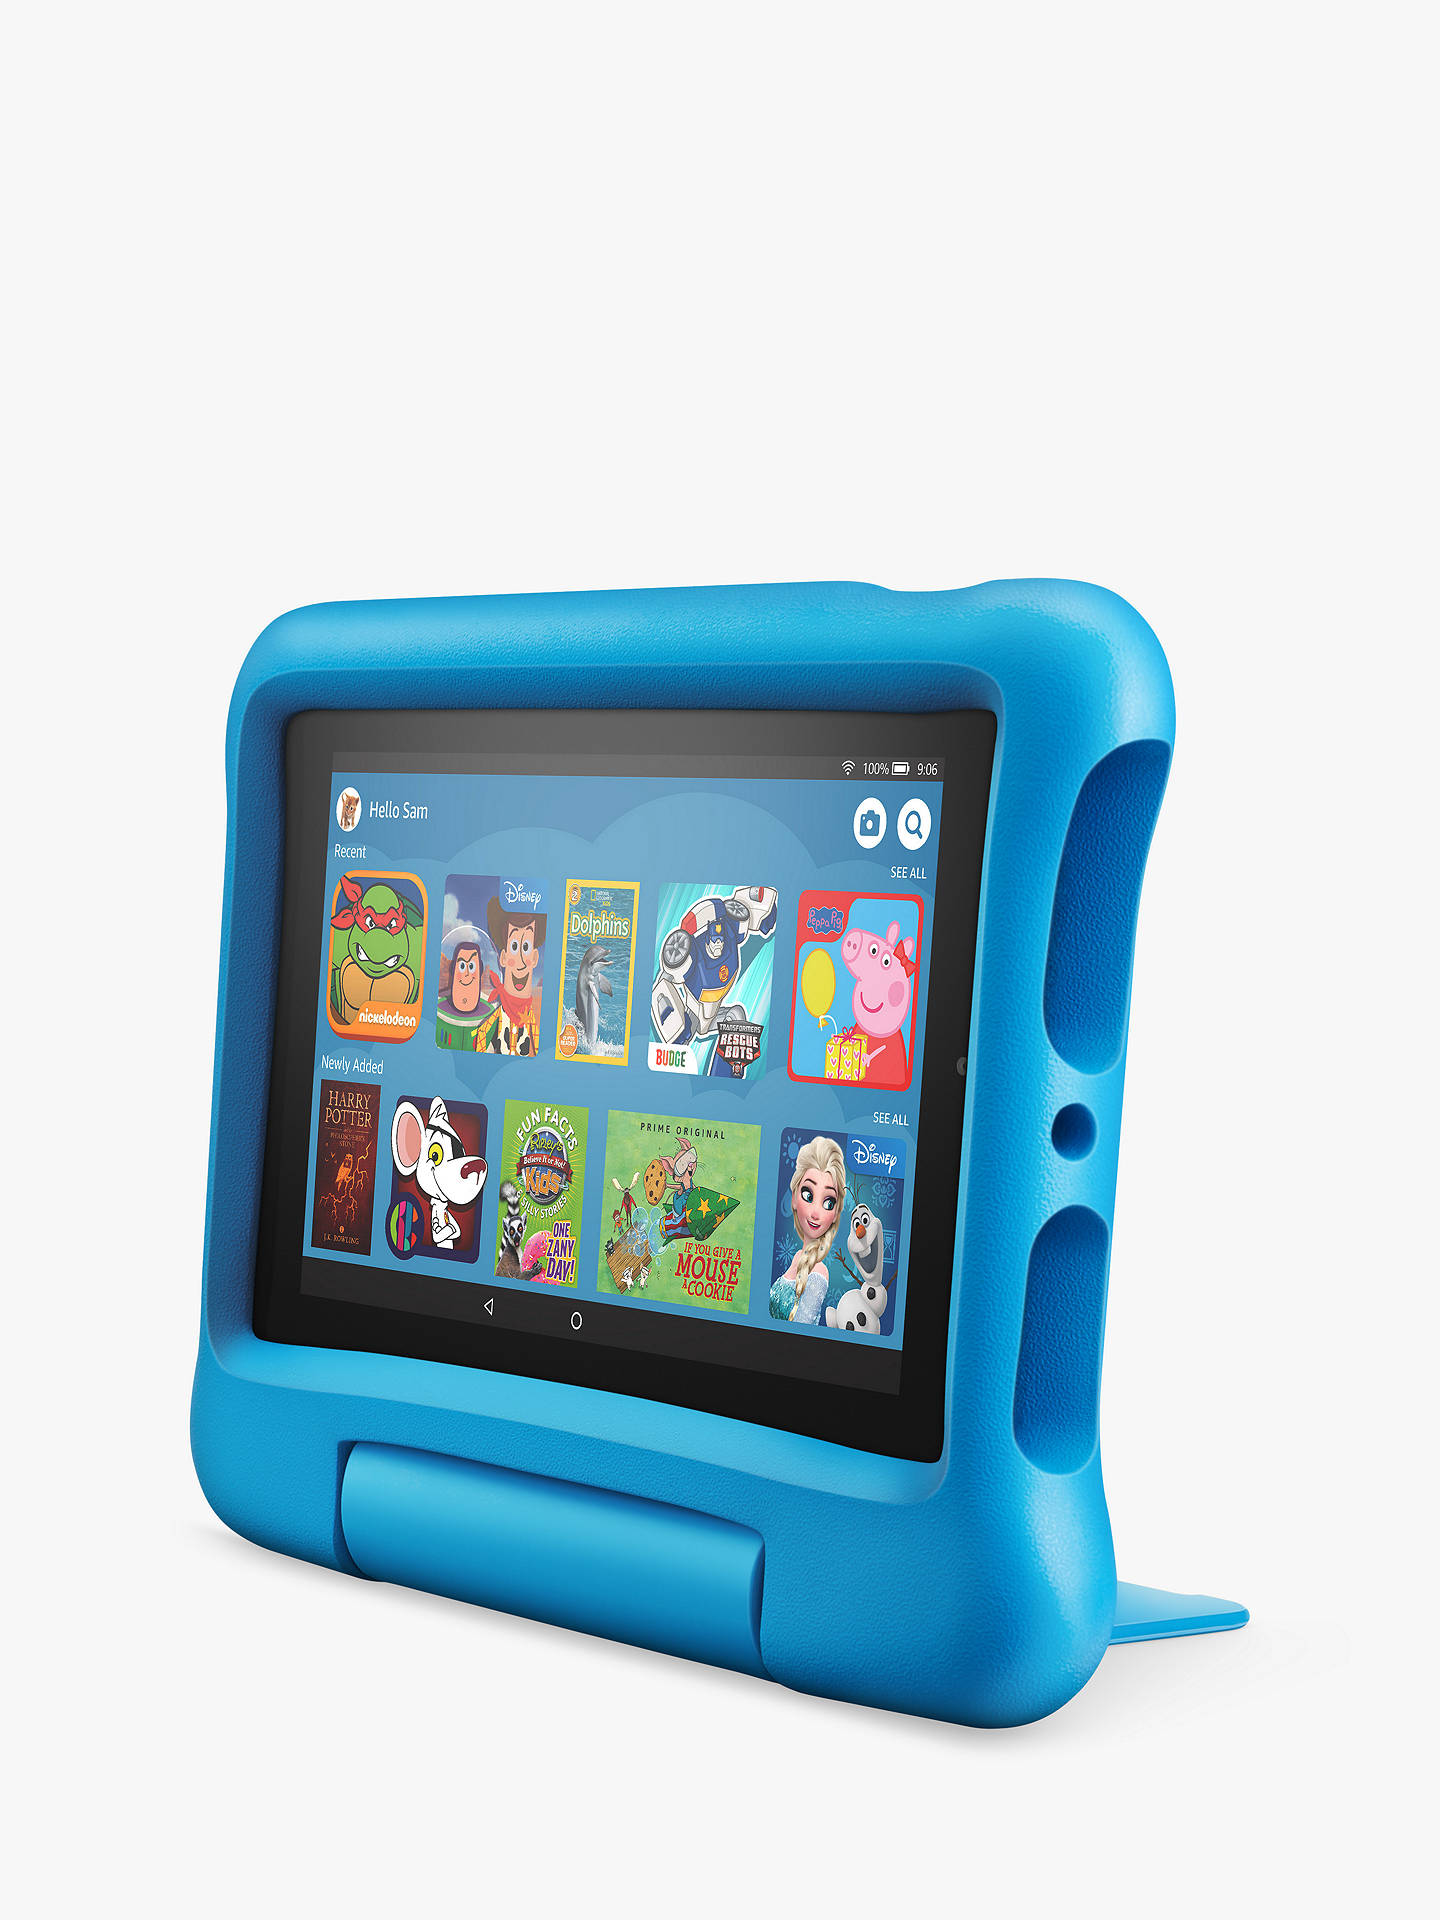 17a6095009140 Amazon Fire 7 Kids Edition Tablet (9th Generation) with Kid-Proof Case,  Quad-core, Fire OS, Wi-Fi, 16GB, 7